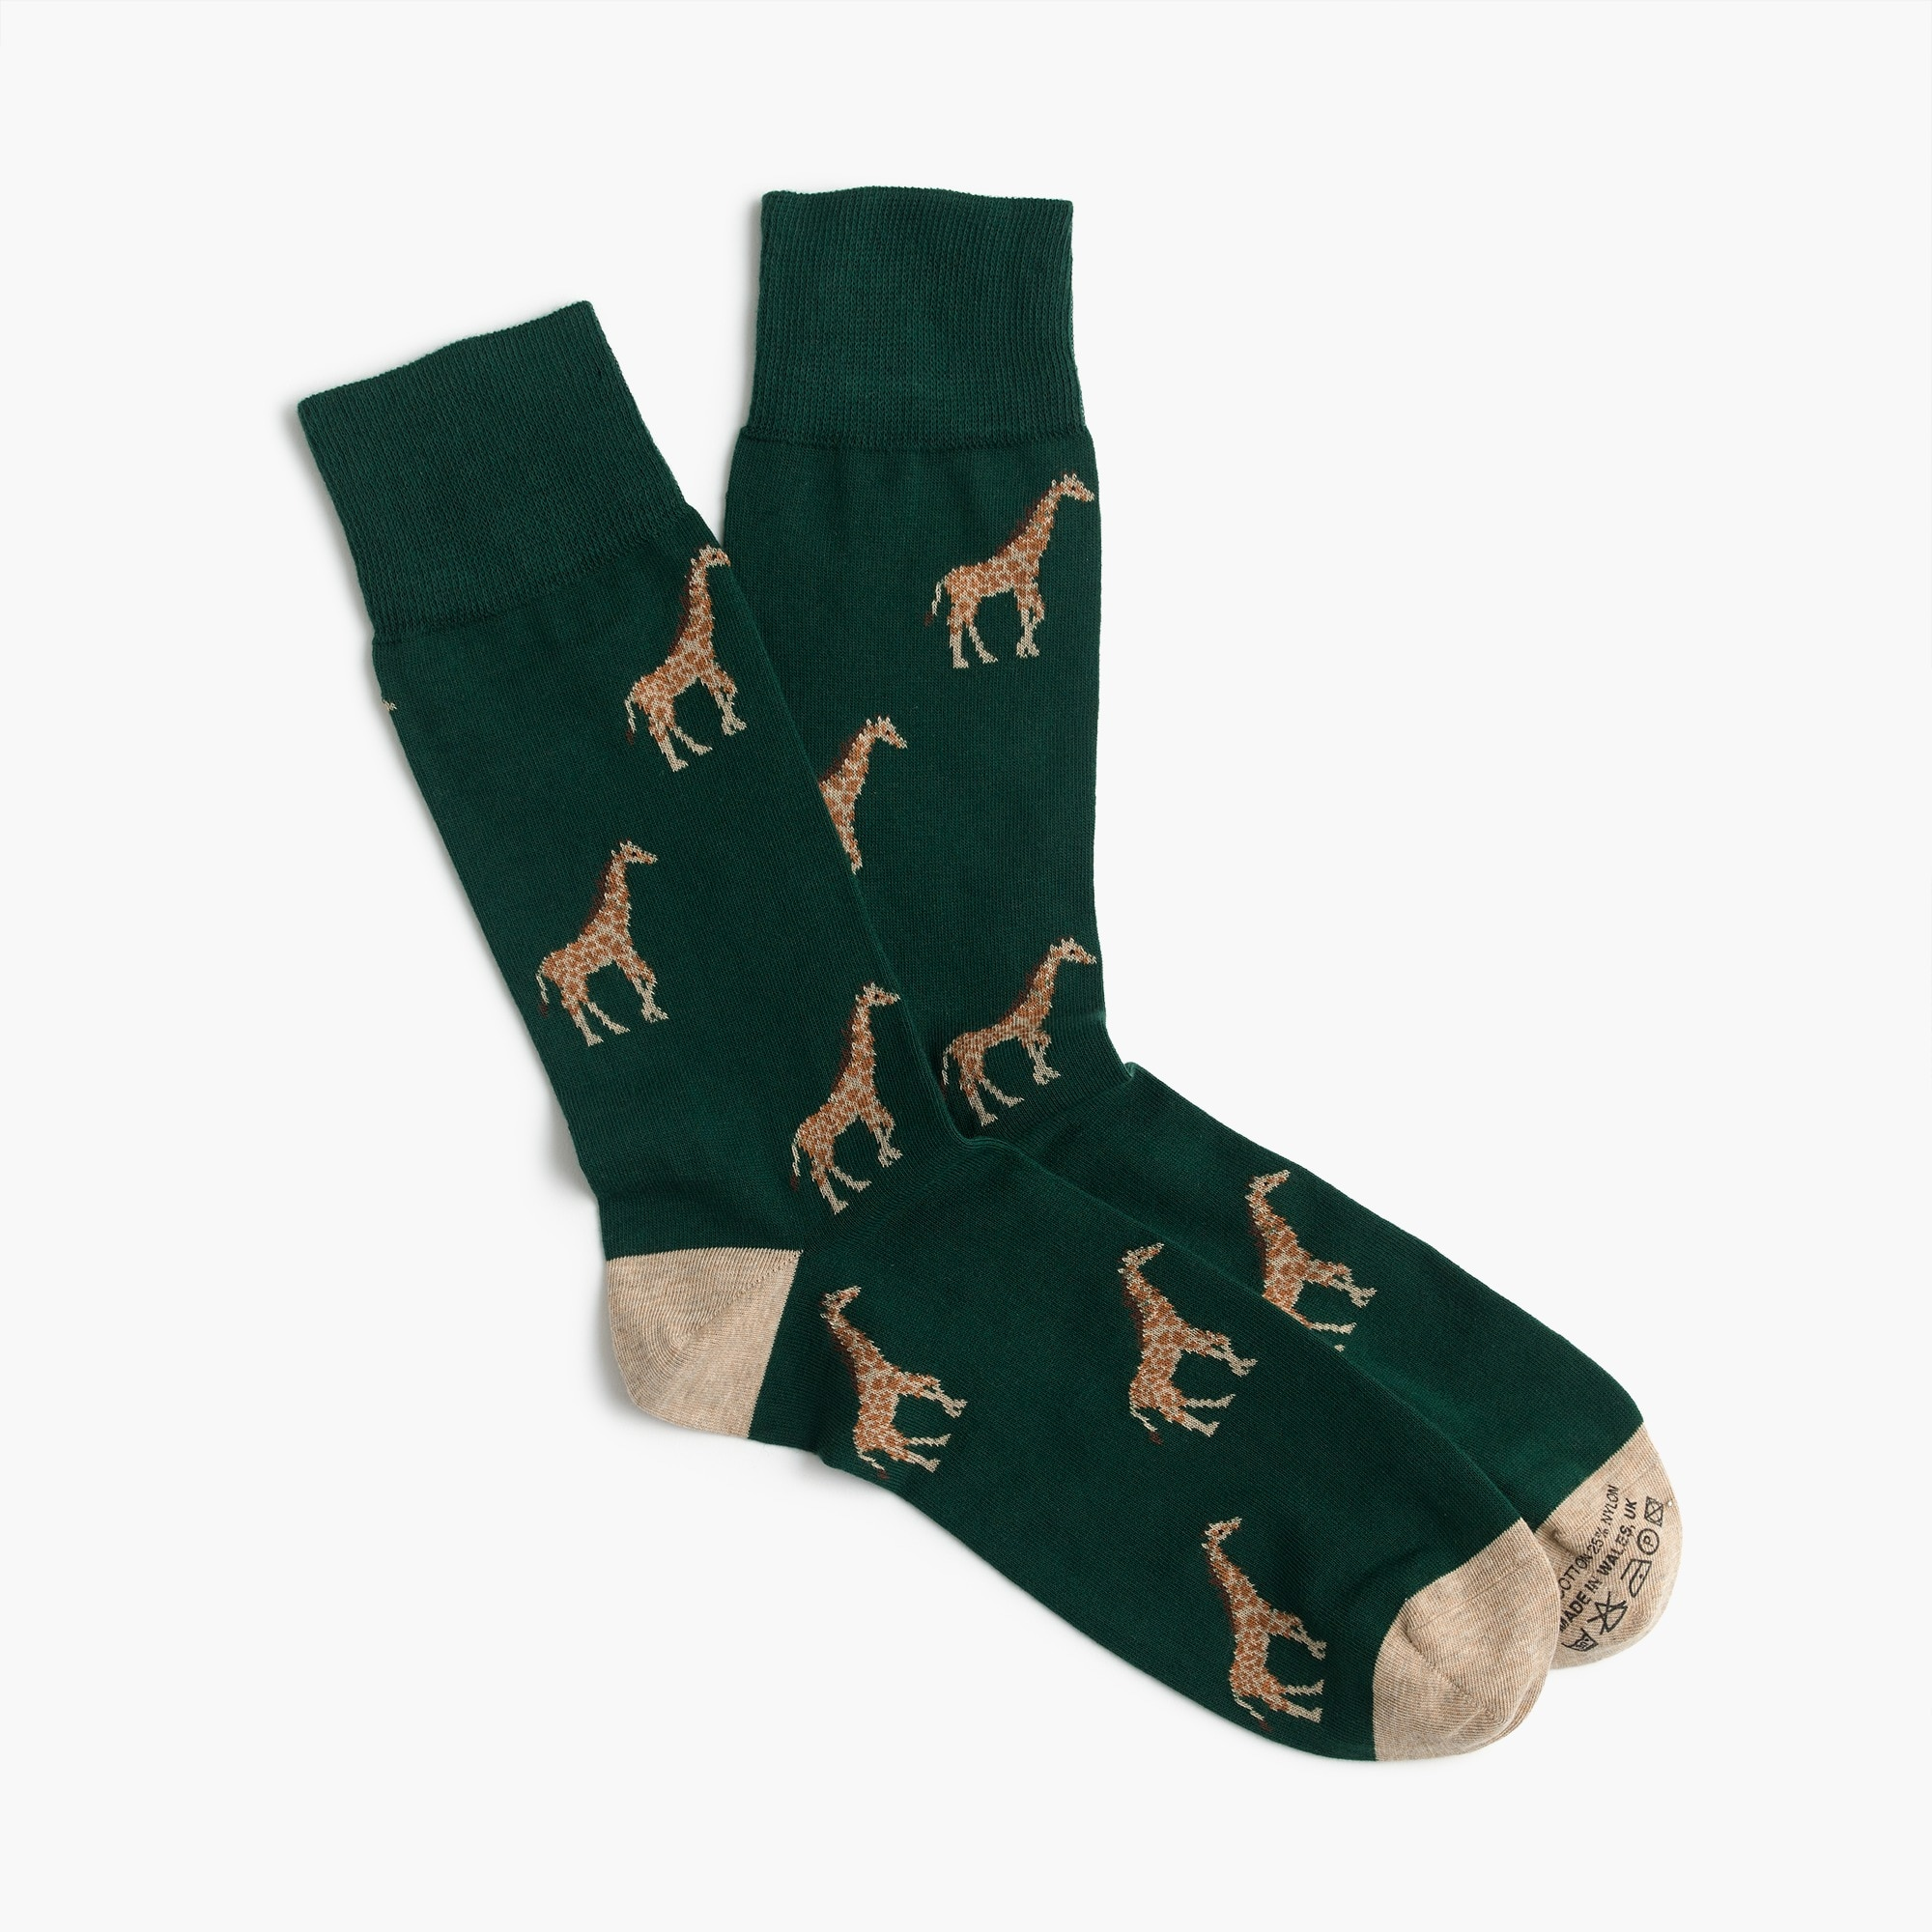 Corgi™ lightweight pattern socks men socks c